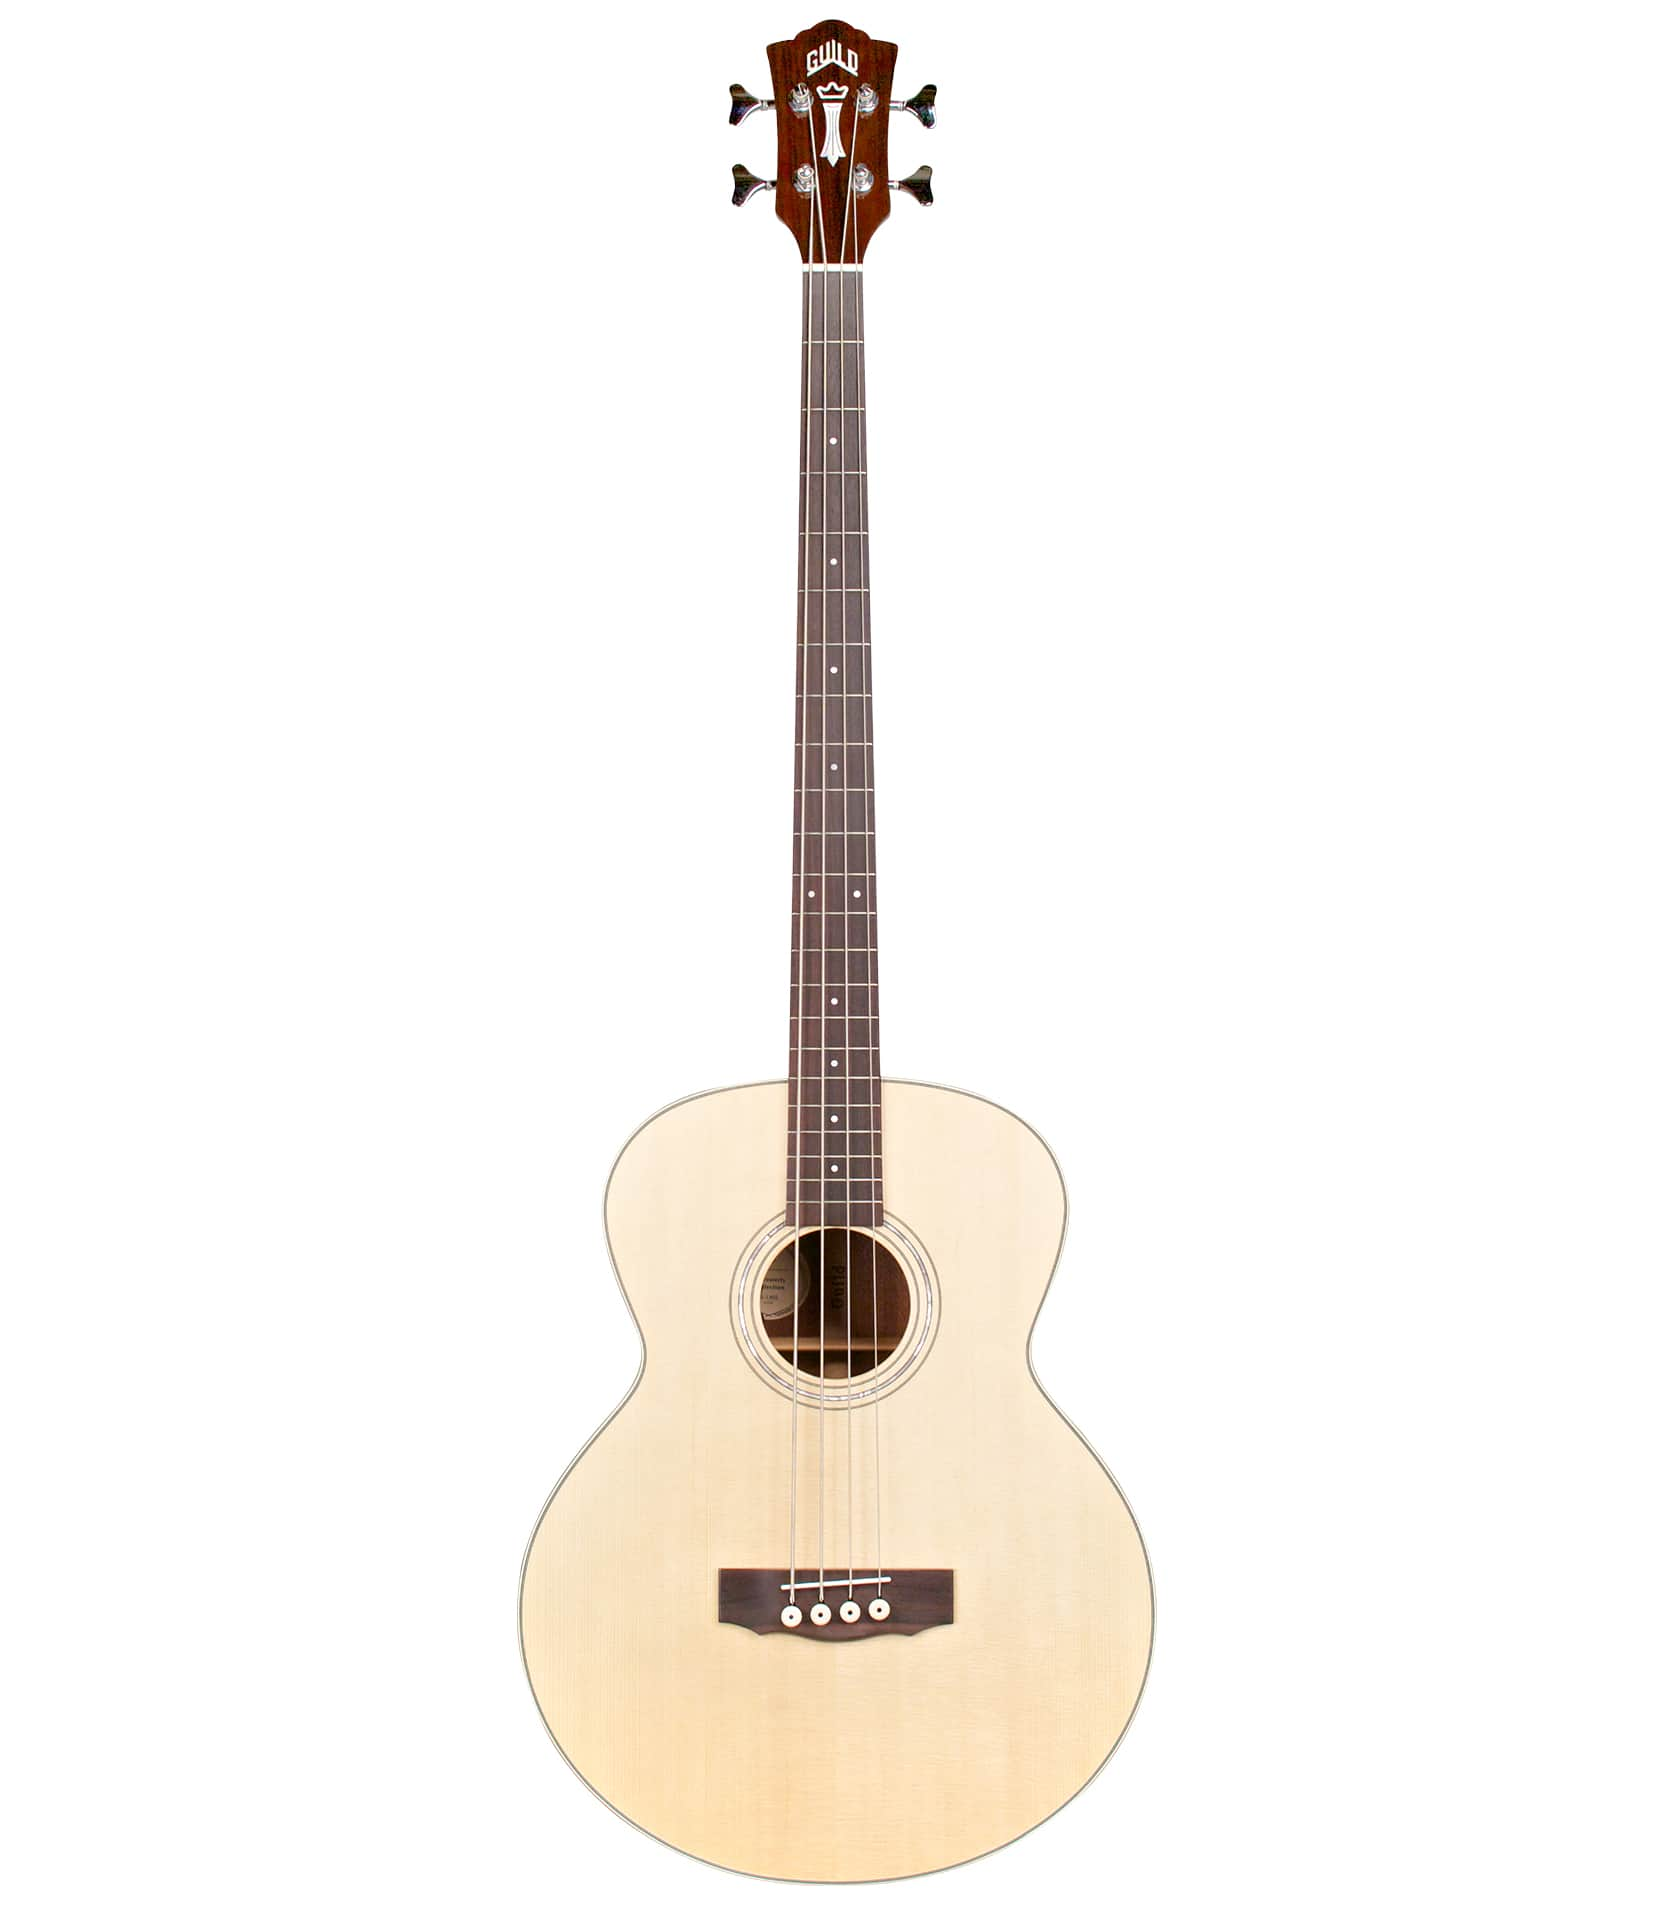 buy guild b140e acoustic bass westerly collection